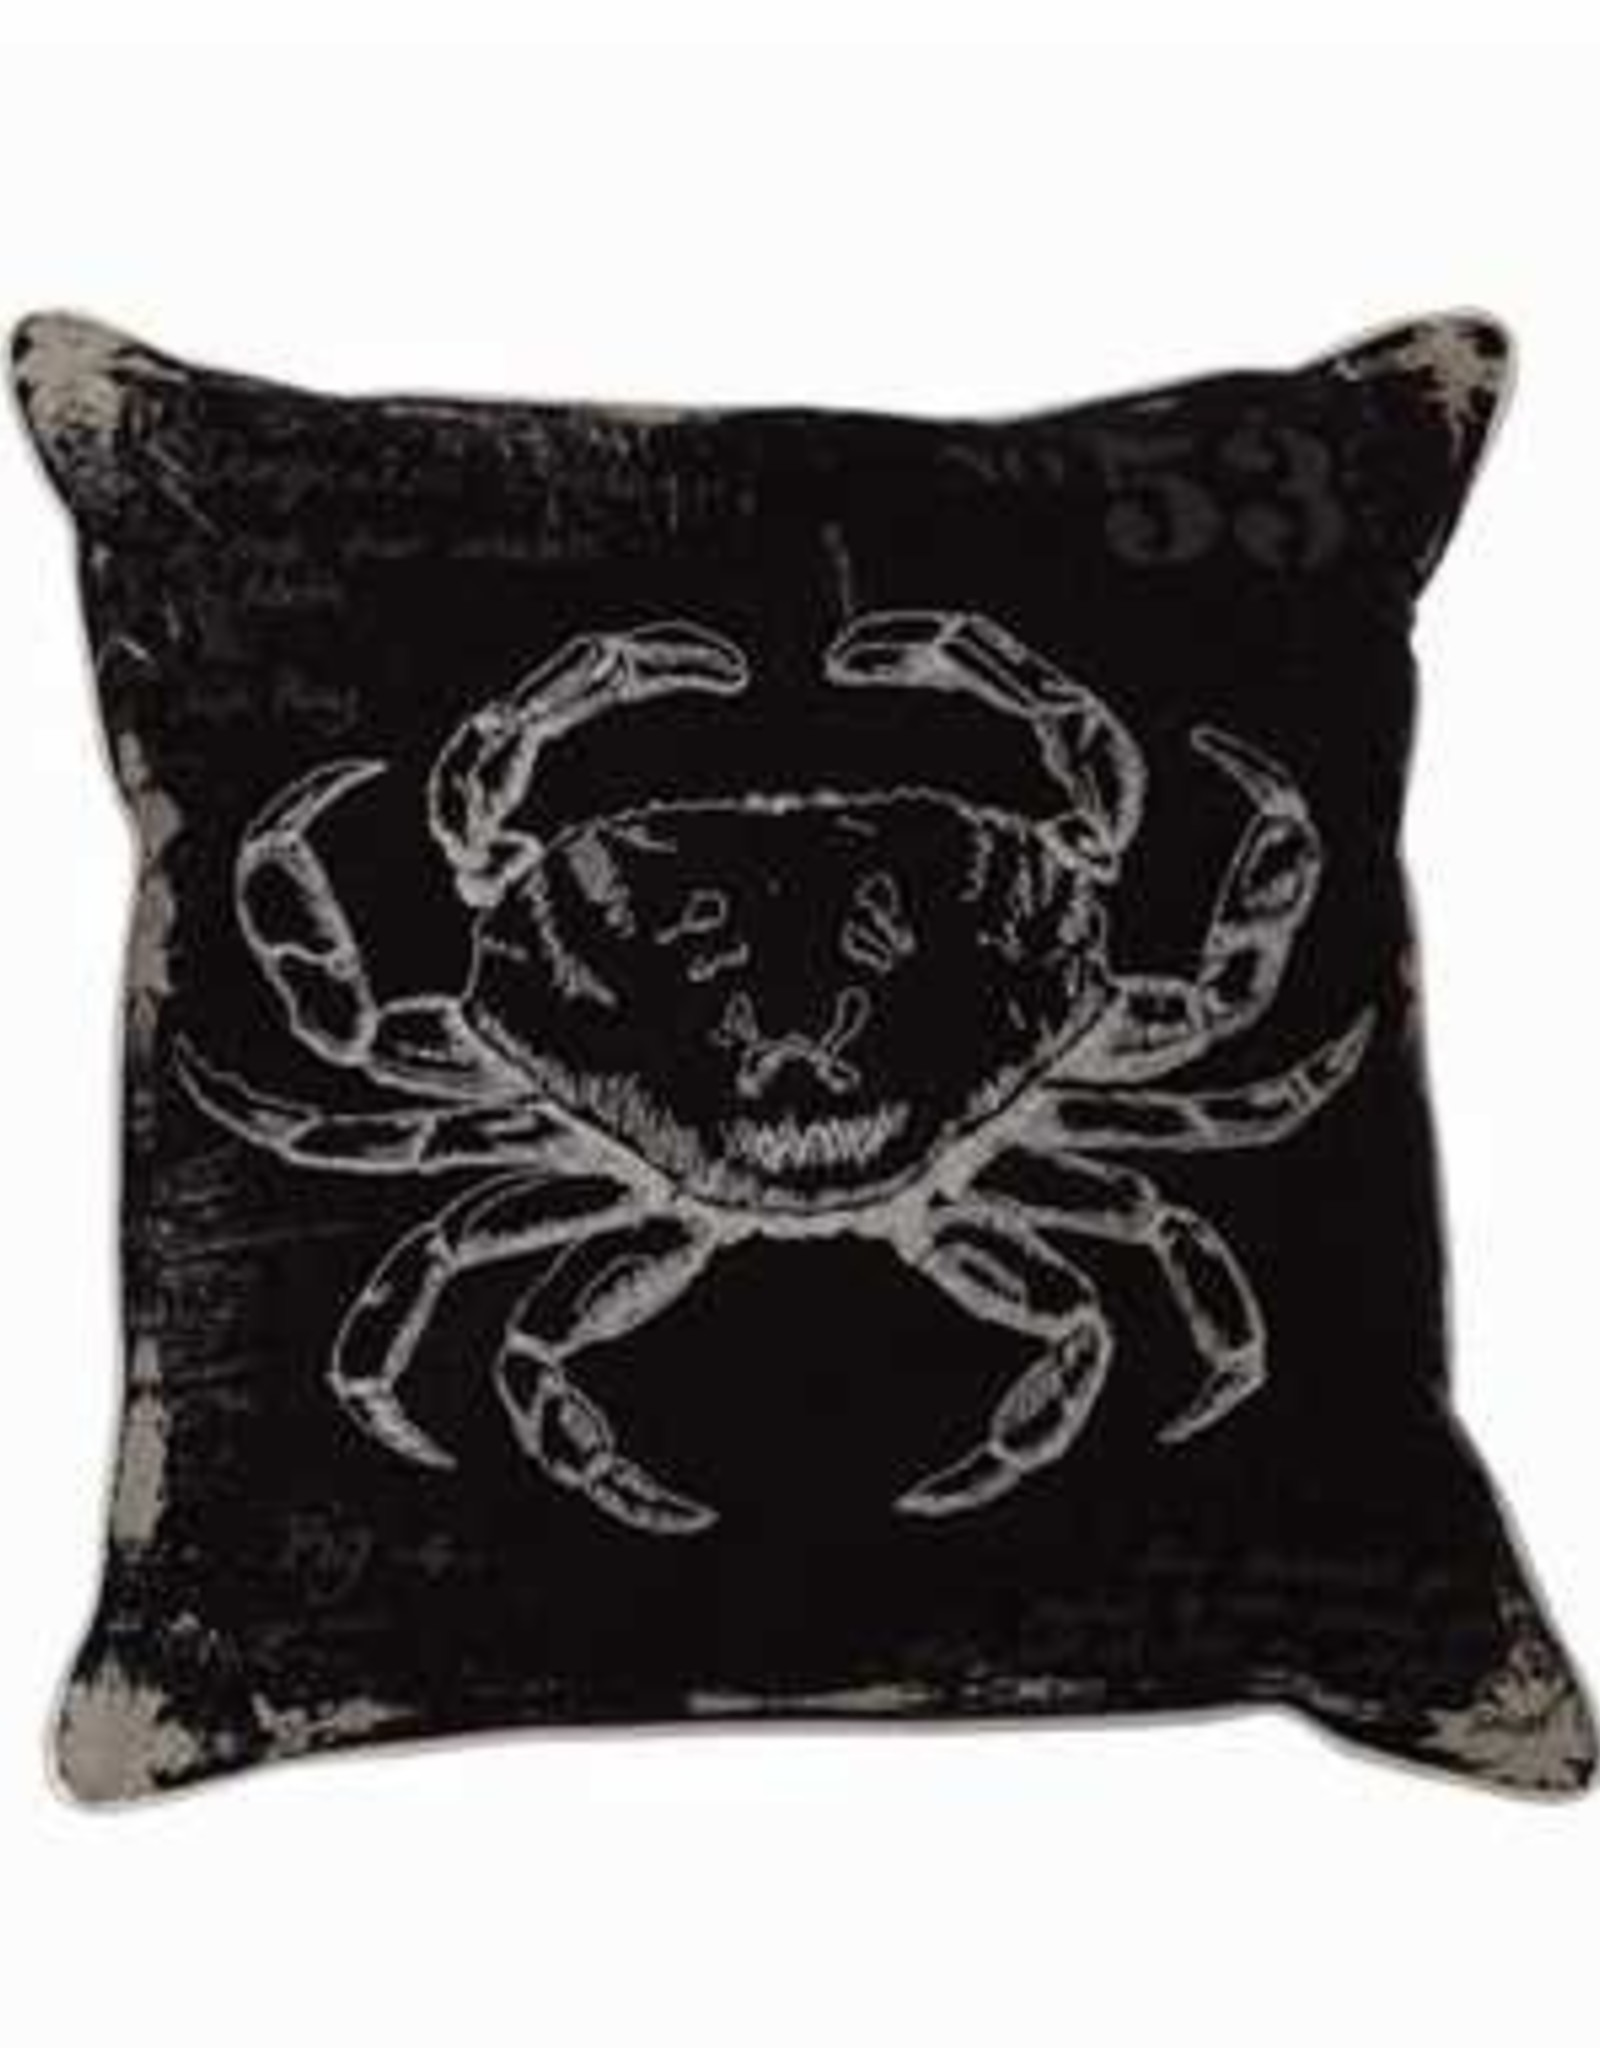 Black and White Crab Pillow